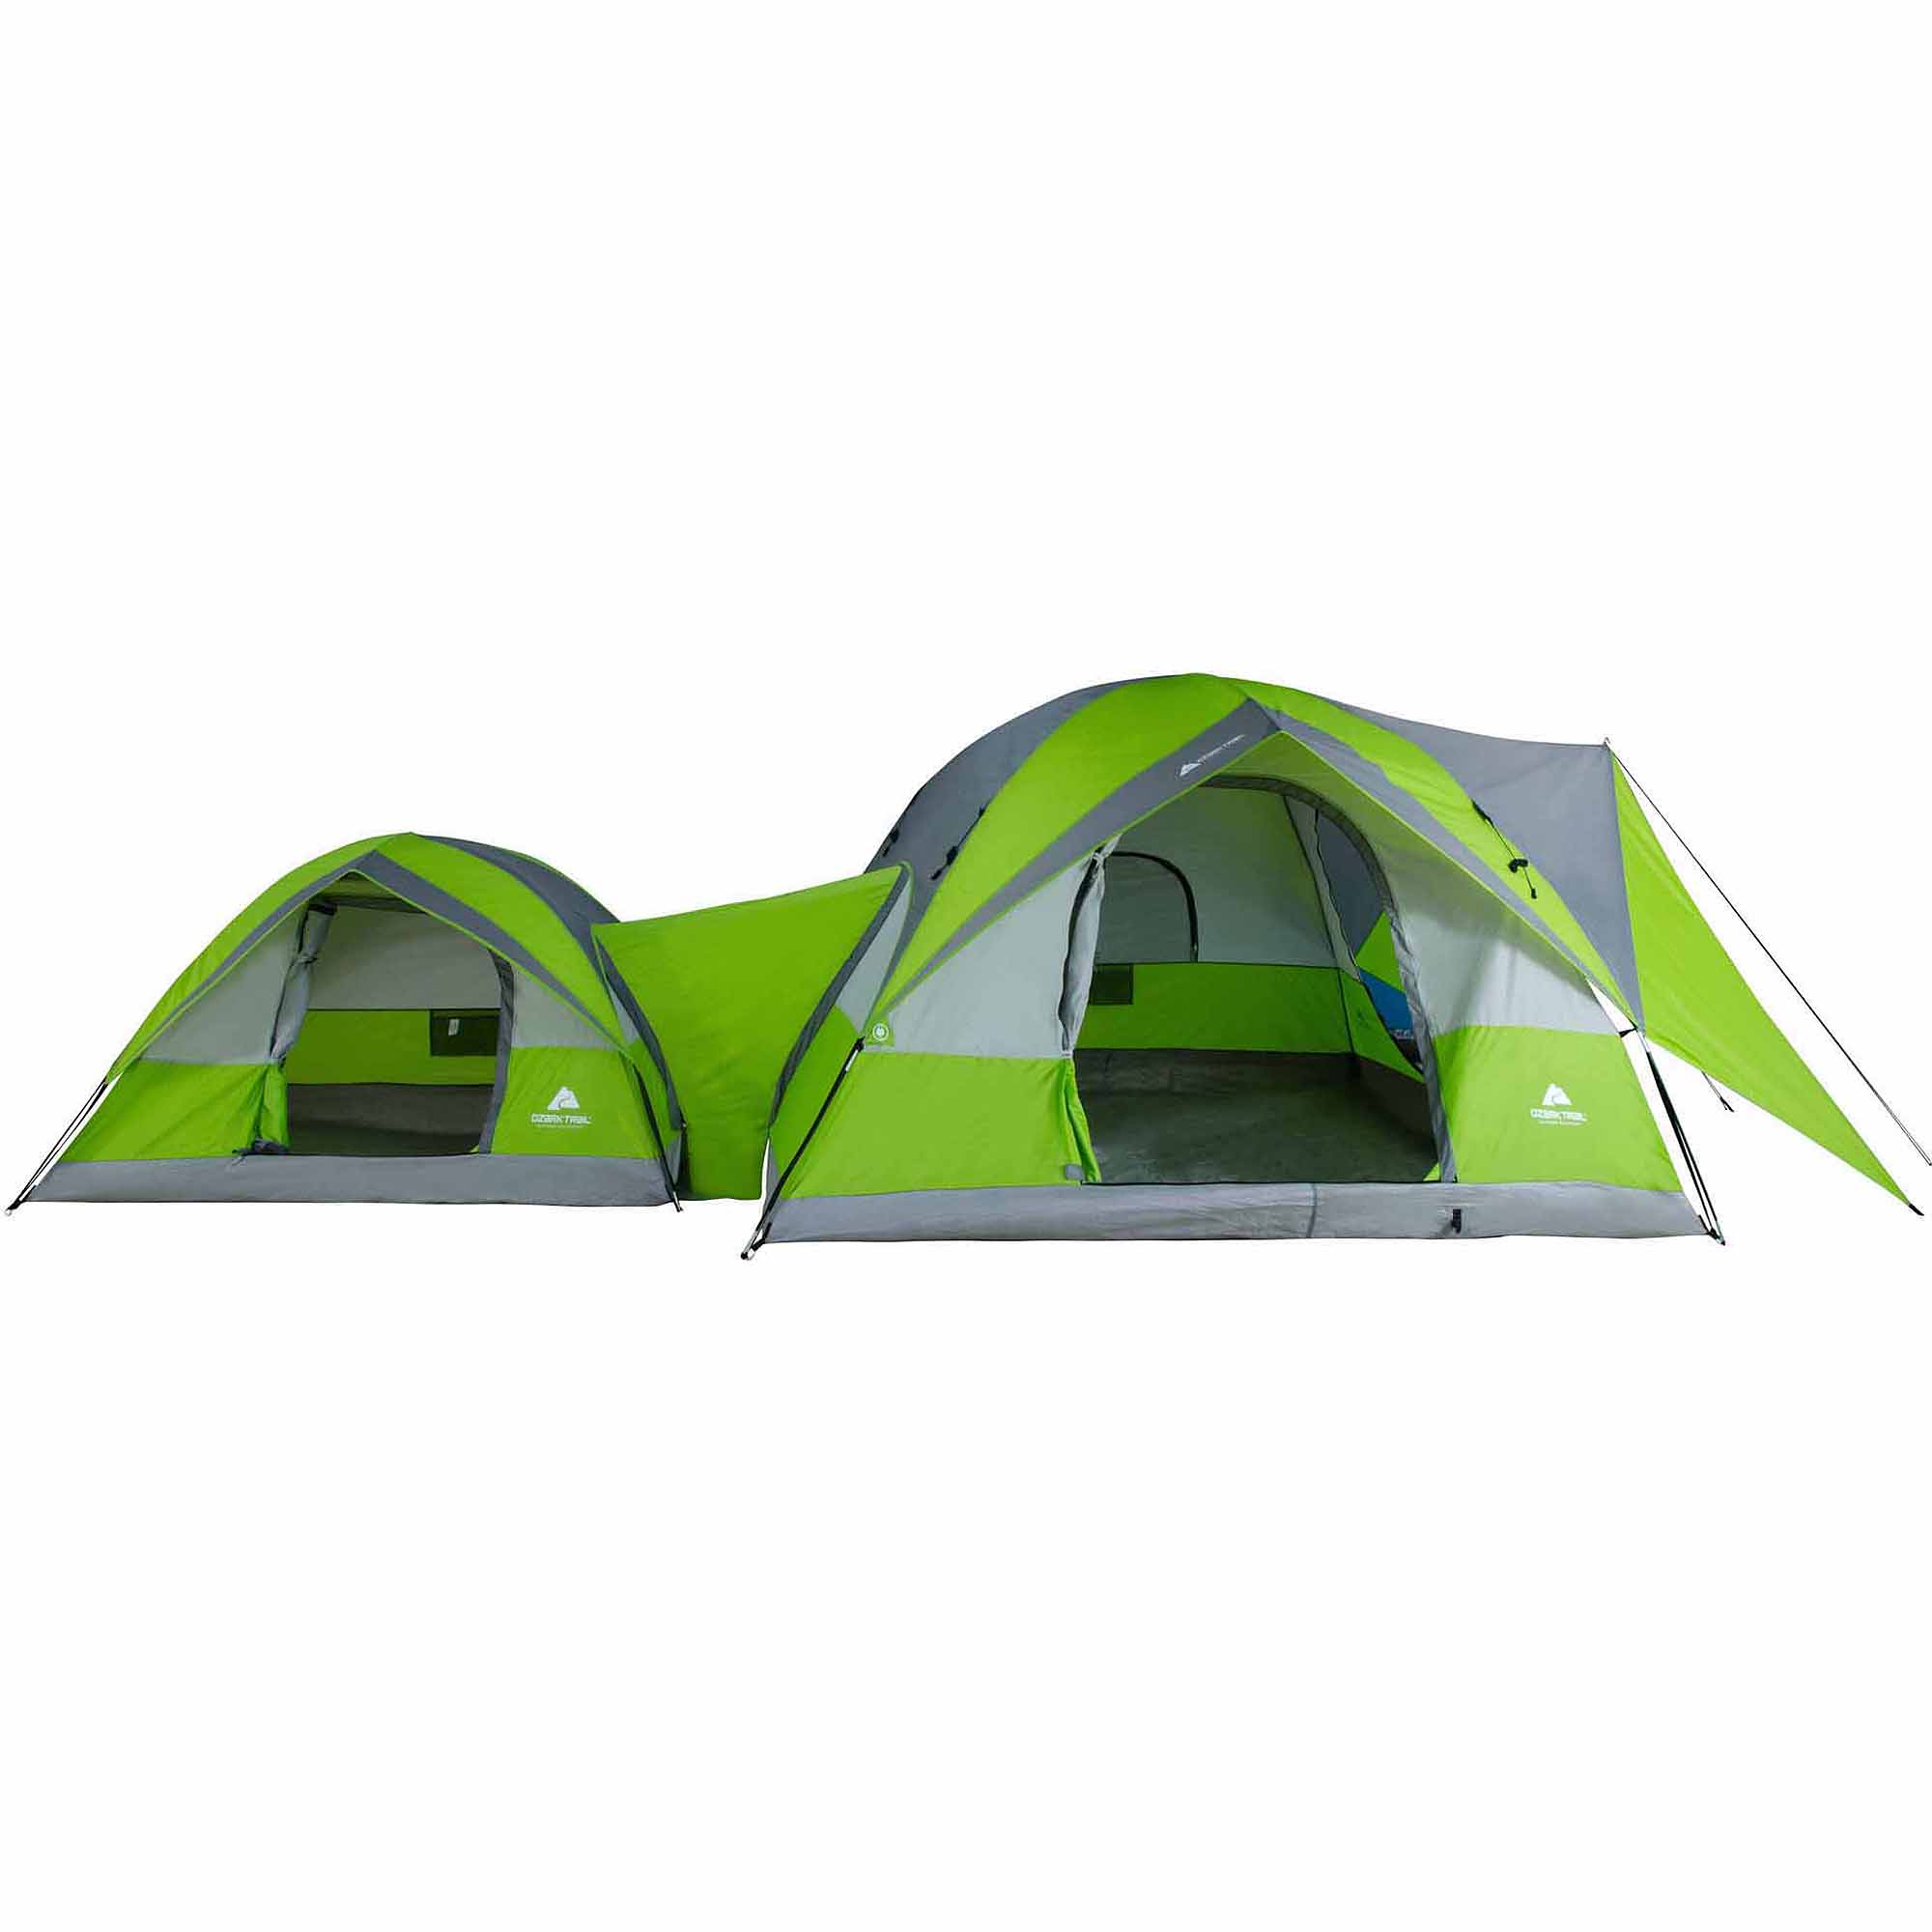 Ozark Trail 2-Dome Connection C&ing Tent for 8 People  sc 1 st  Walmart & Ozark Trail 2-Dome Connection Camping Tent for 8 People - Walmart.com